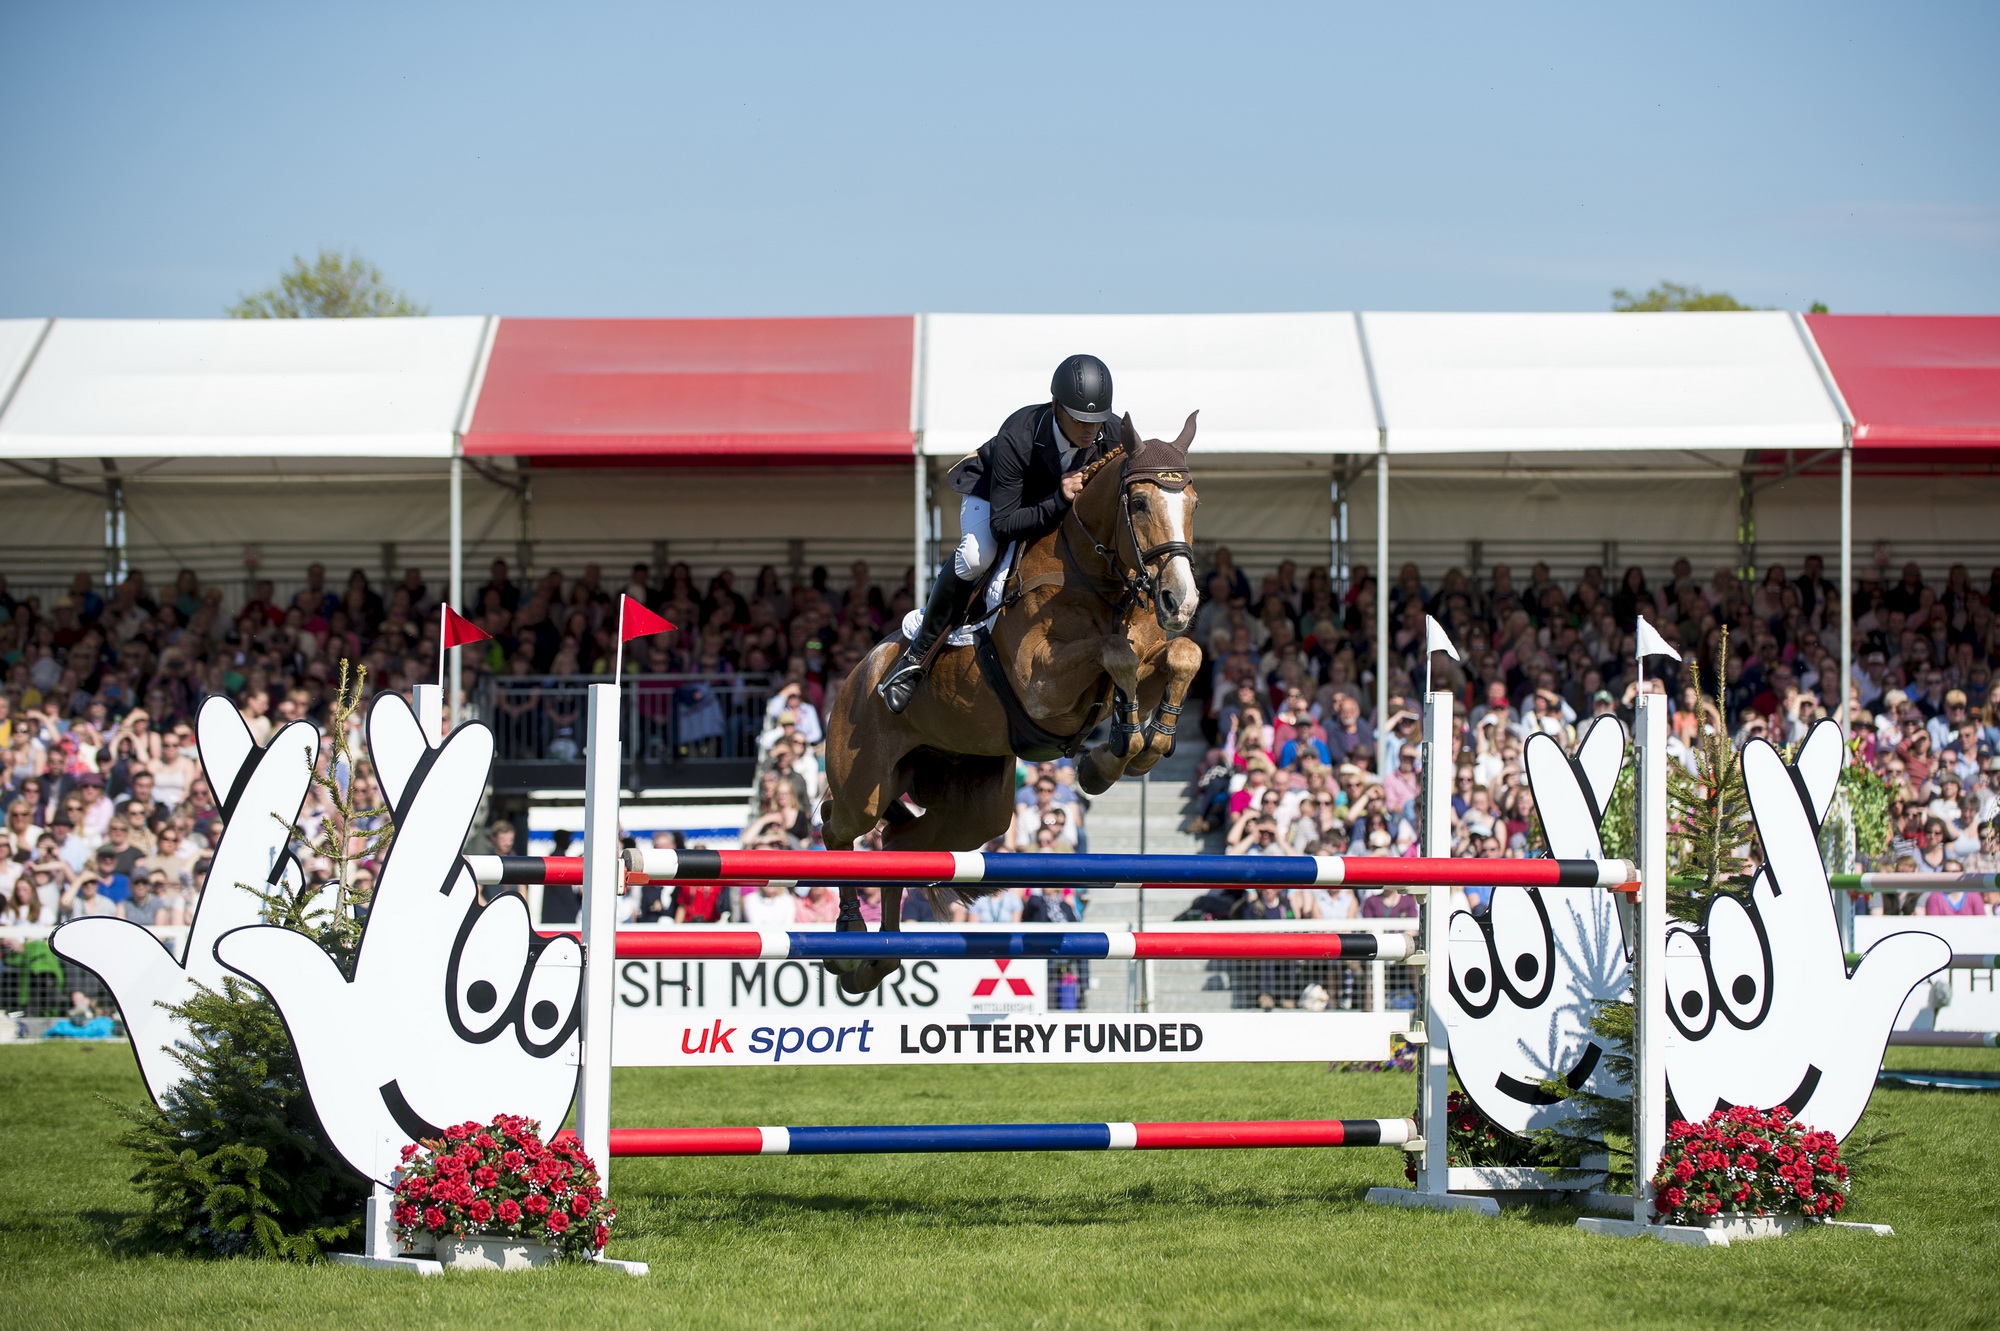 Nicholson went clear in the show jumping phase to take the title (Pic: FEI/ Jon Stroud)